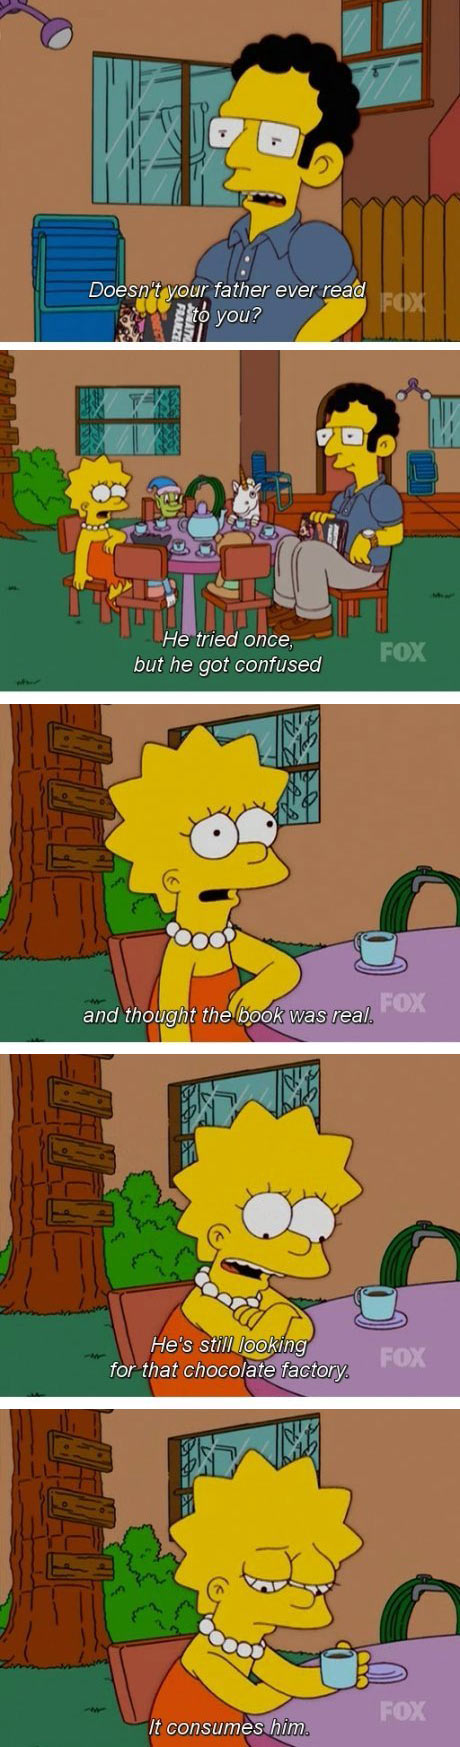 funny-Simpsons-Lisa-book-quote